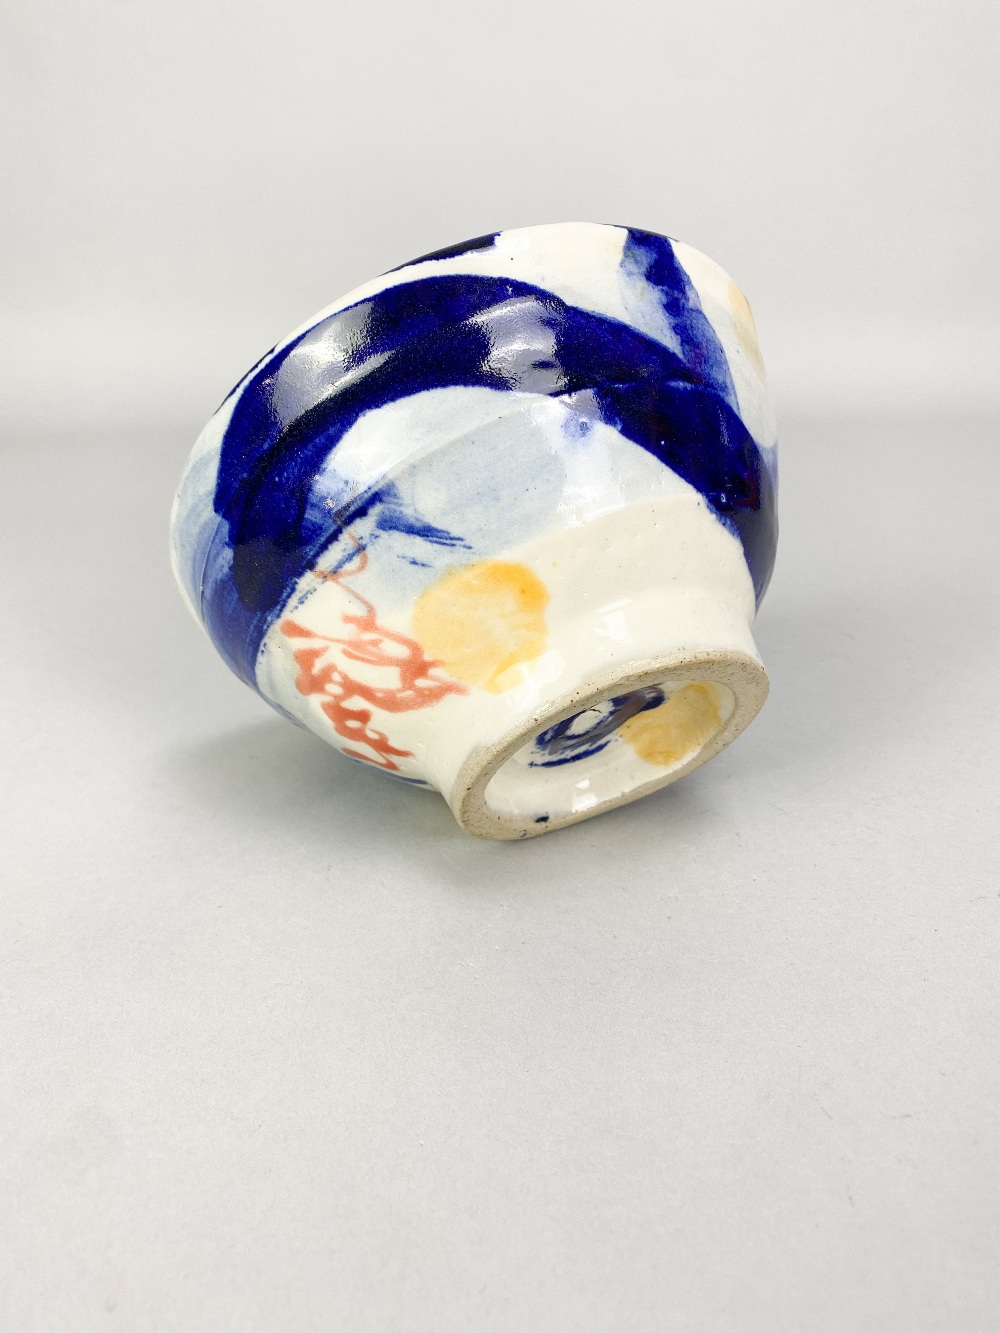 SANDY BROWN (born 1946); a stoneware footed bowl with blue and orange decoration on white ground, - Image 4 of 4